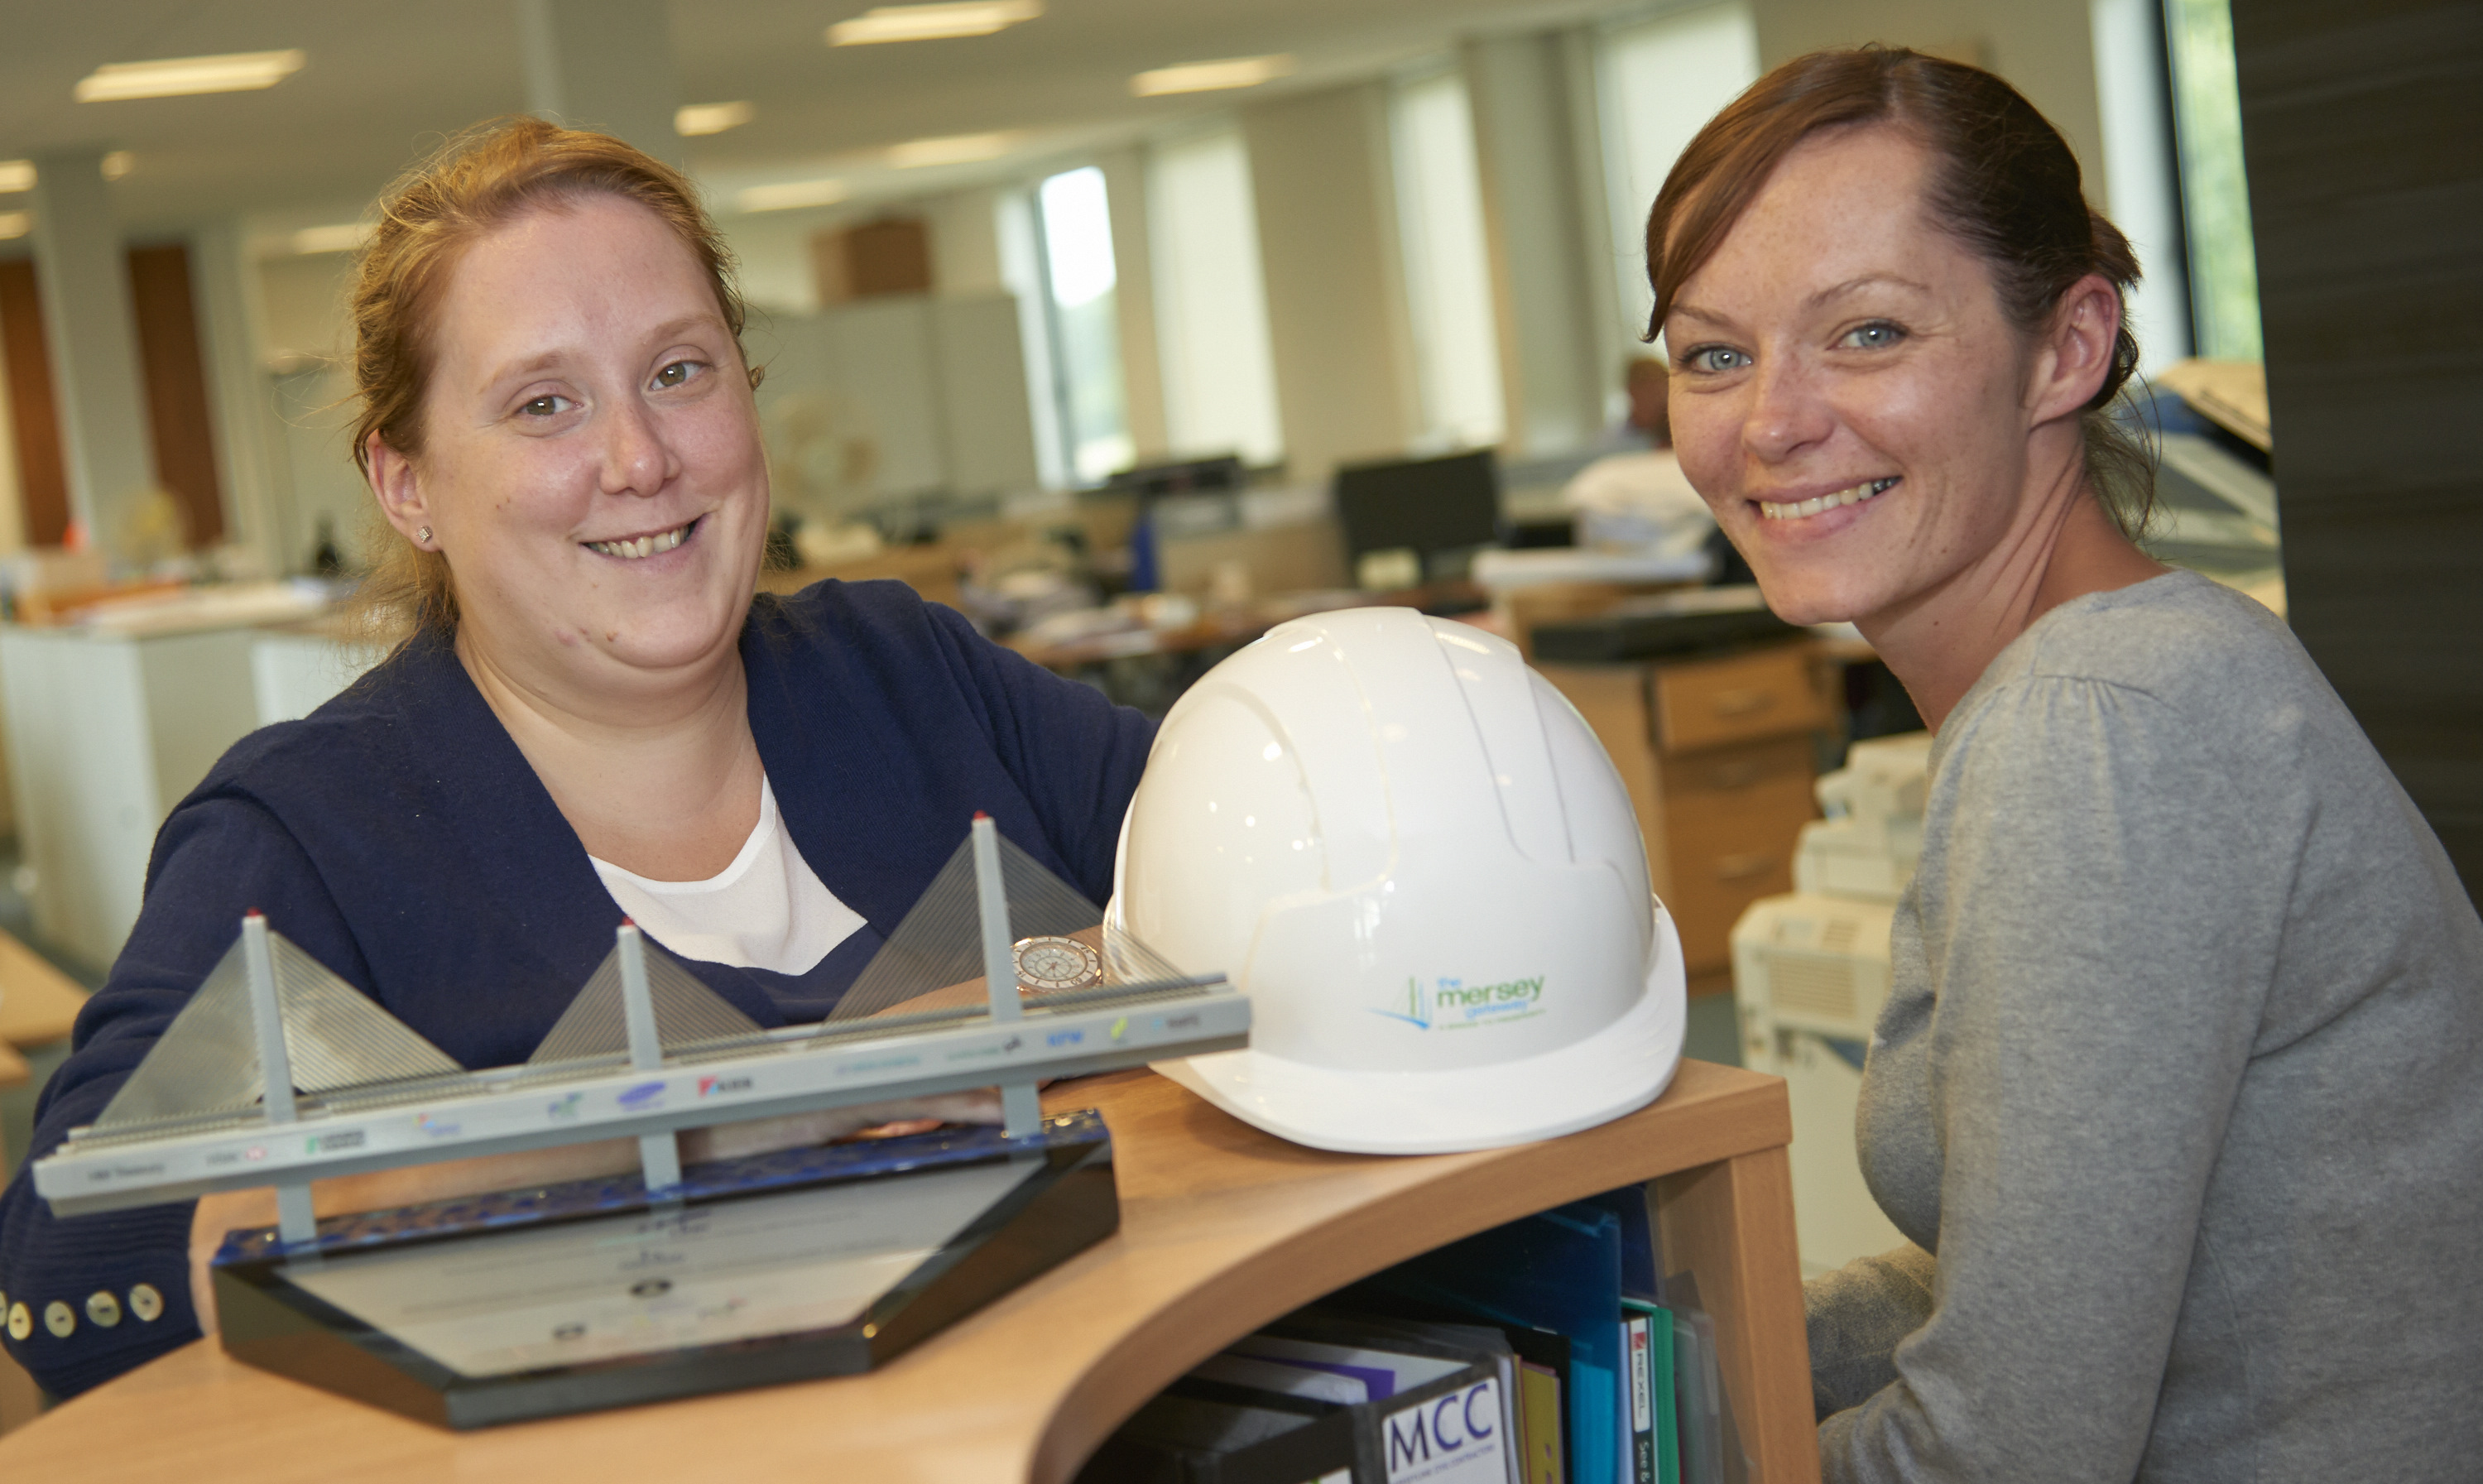 Merseylink apprentices Rebecca Cooke and Lyndsey Carlile have secured jobs on the Mersey Gateway Project